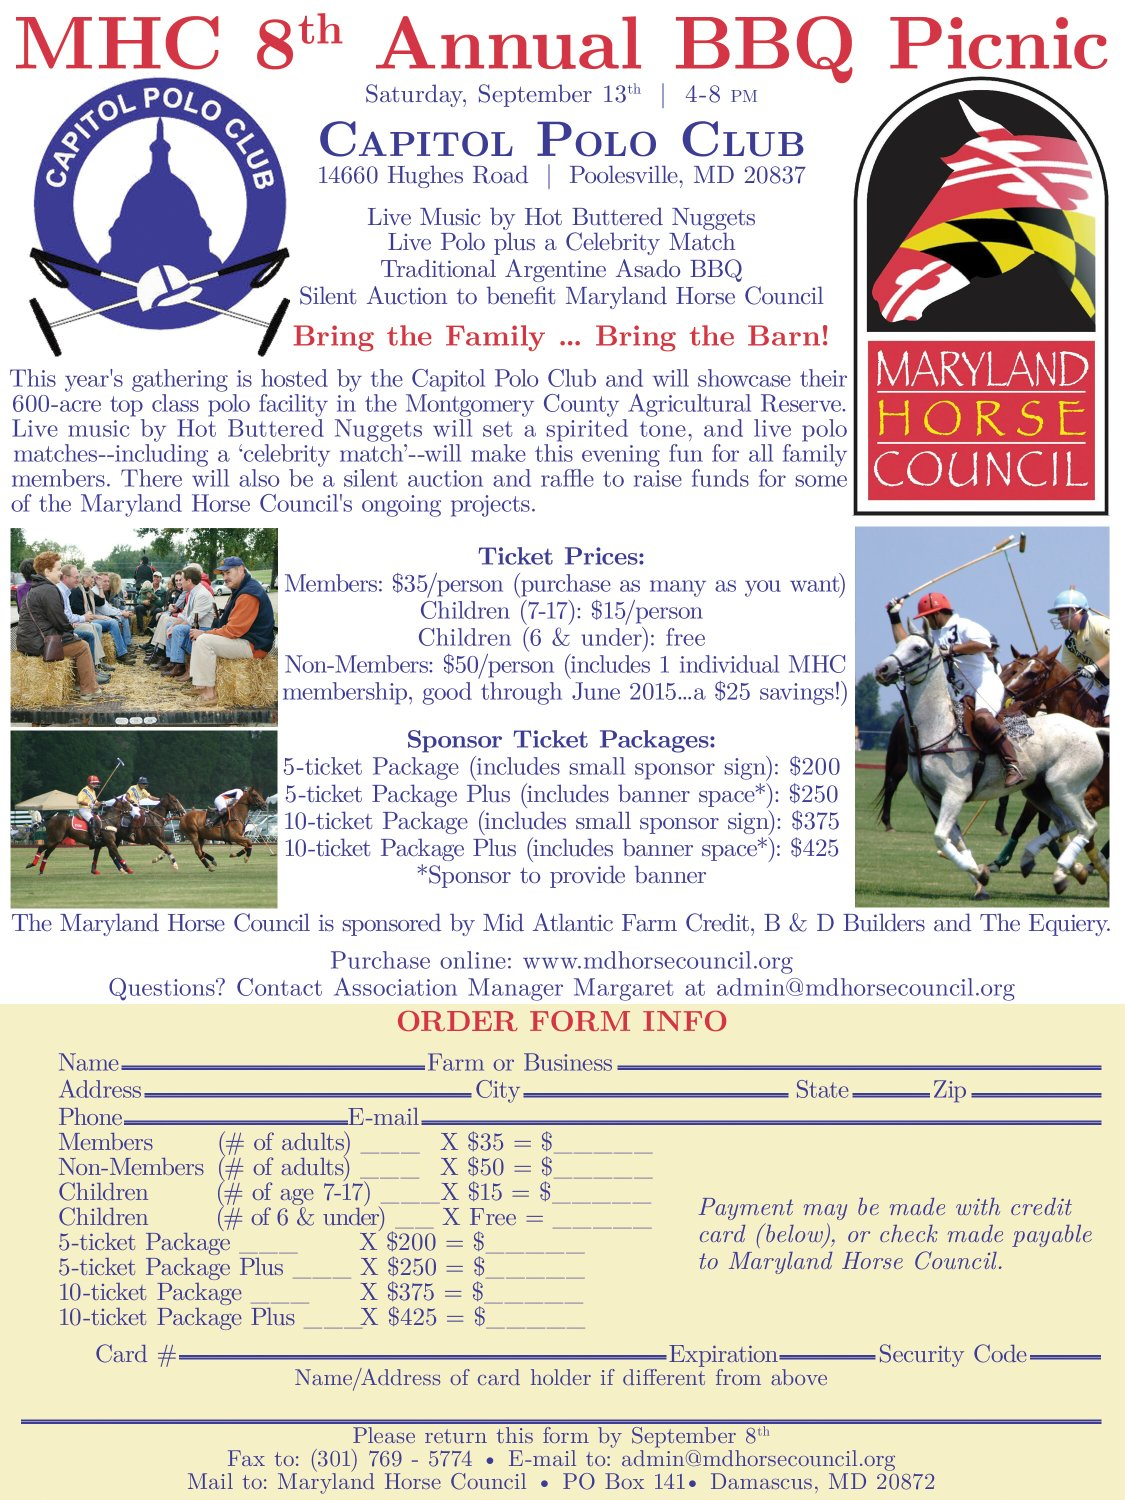 Maryland Horse Council 8th Annual BBQ